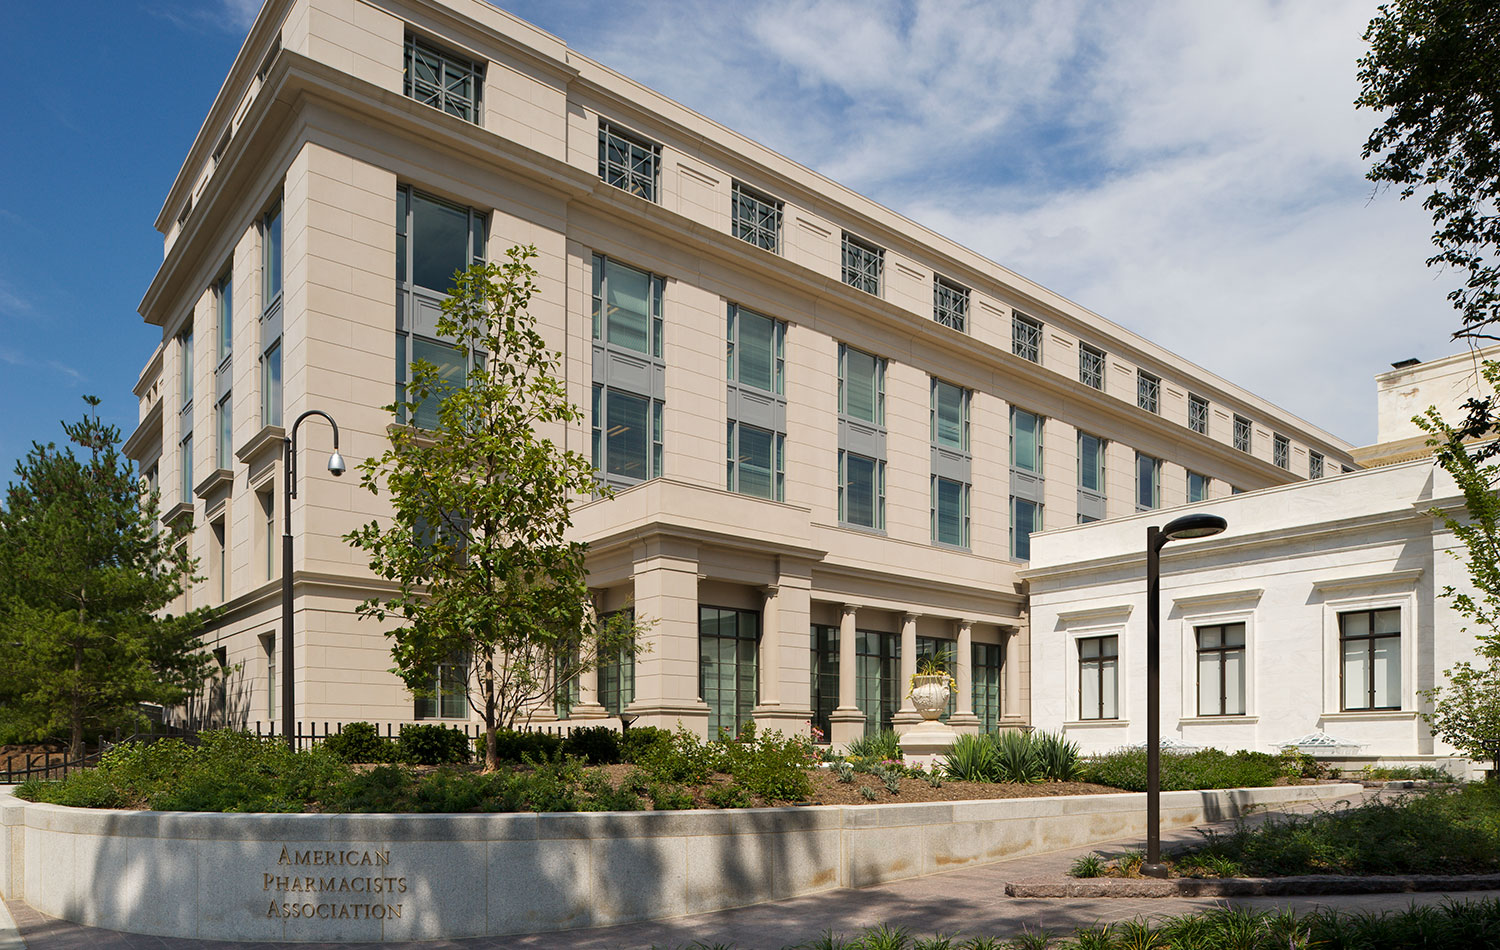 American Pharmacists Association Headquarters